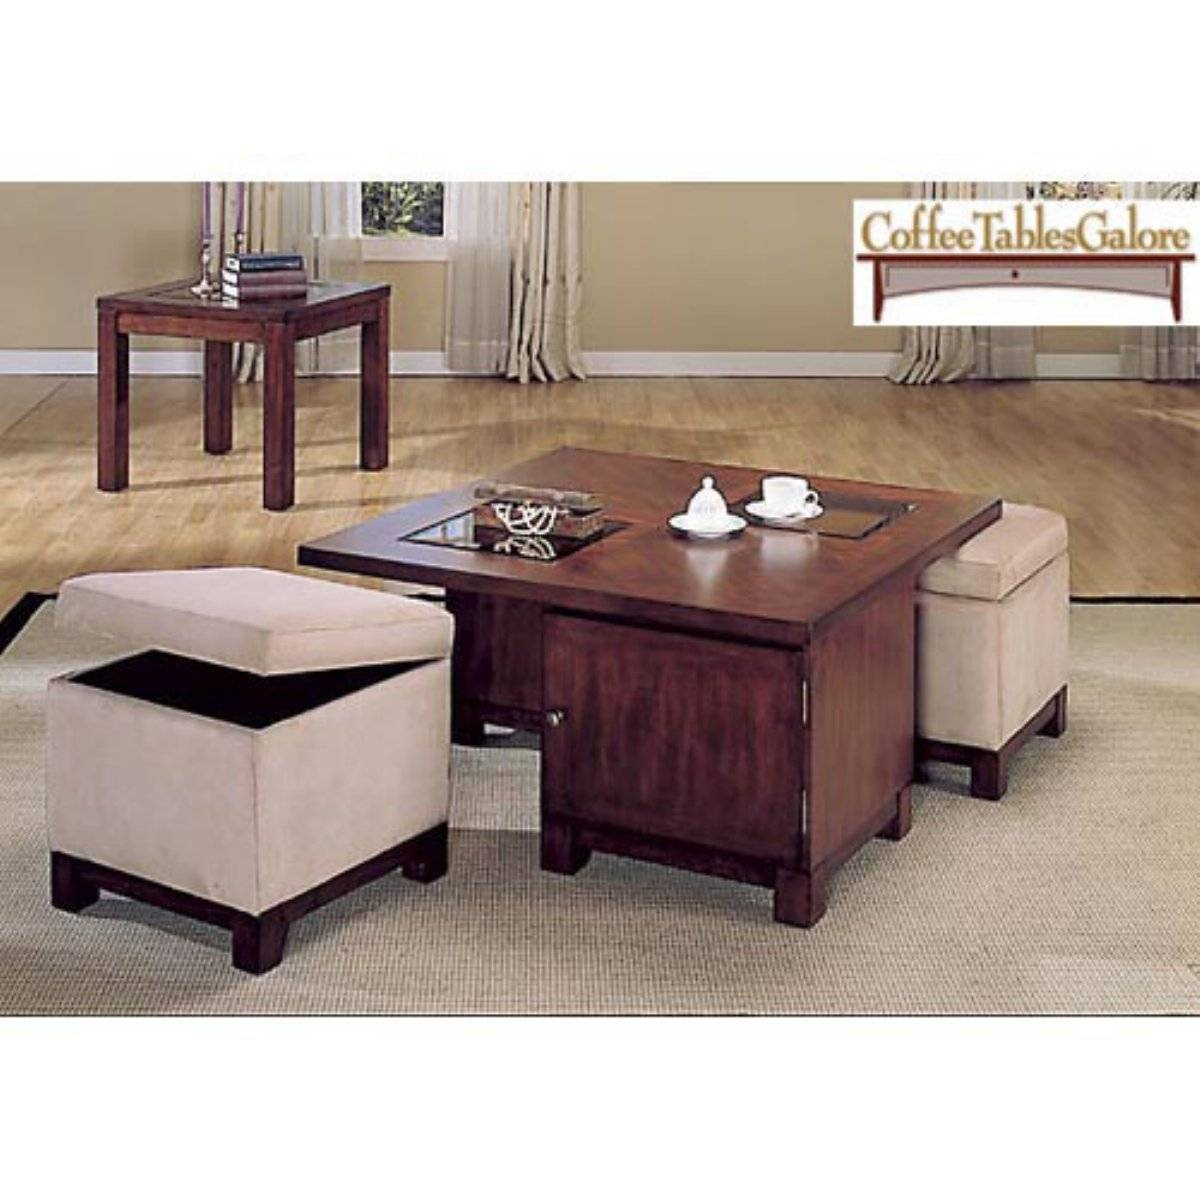 Large Square Coffee Tables | Coffeetablesmartin - Tables And intended for Large Square Coffee Tables (Image 17 of 30)